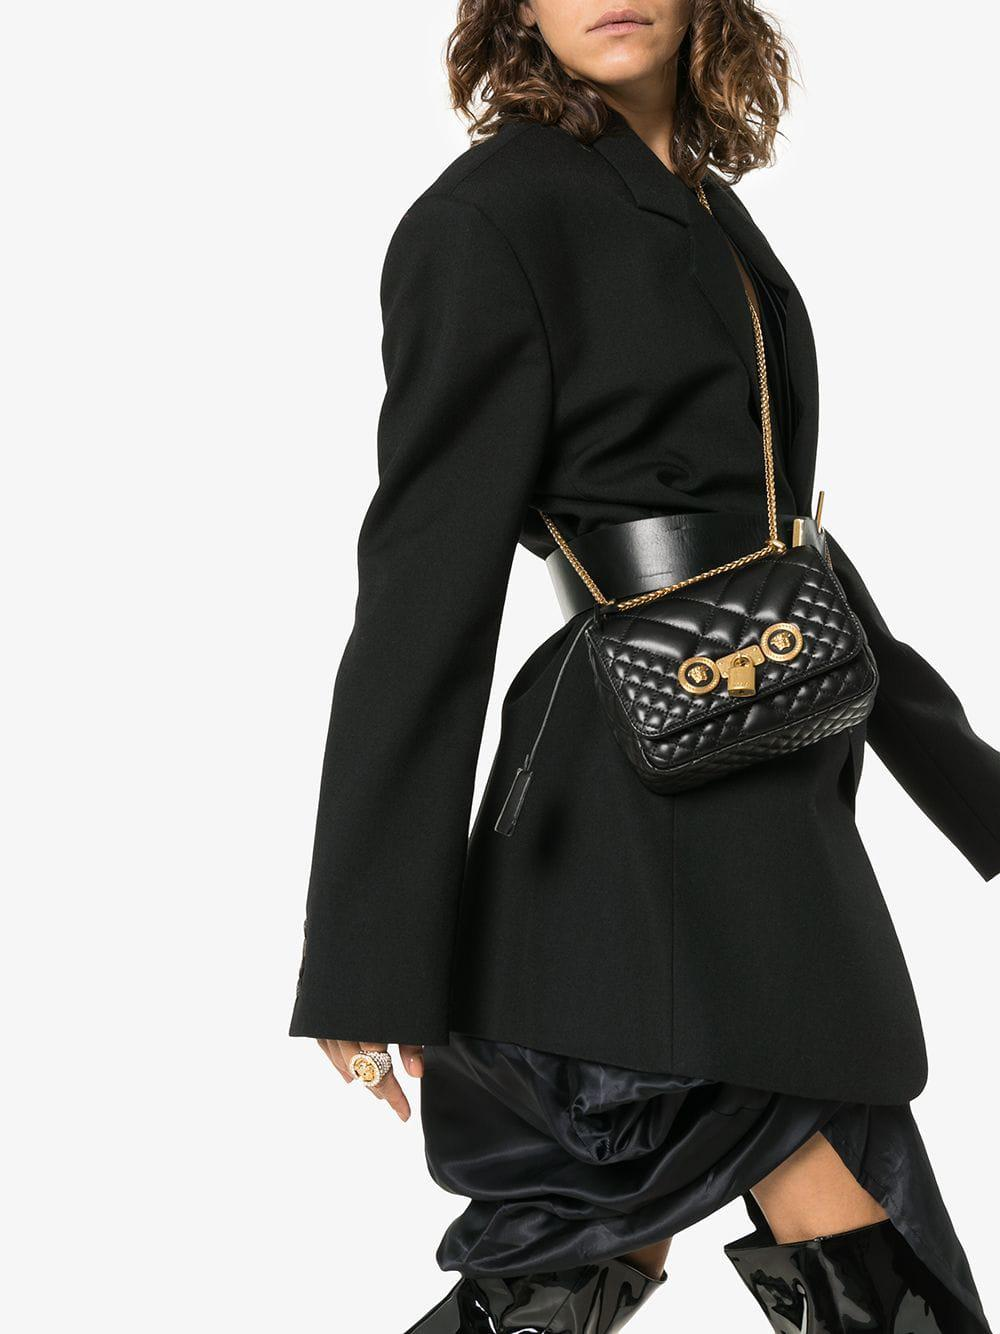 344de2e241a3 Lyst - Versace Black Small Quilted Leather Shoulder Bag in Black